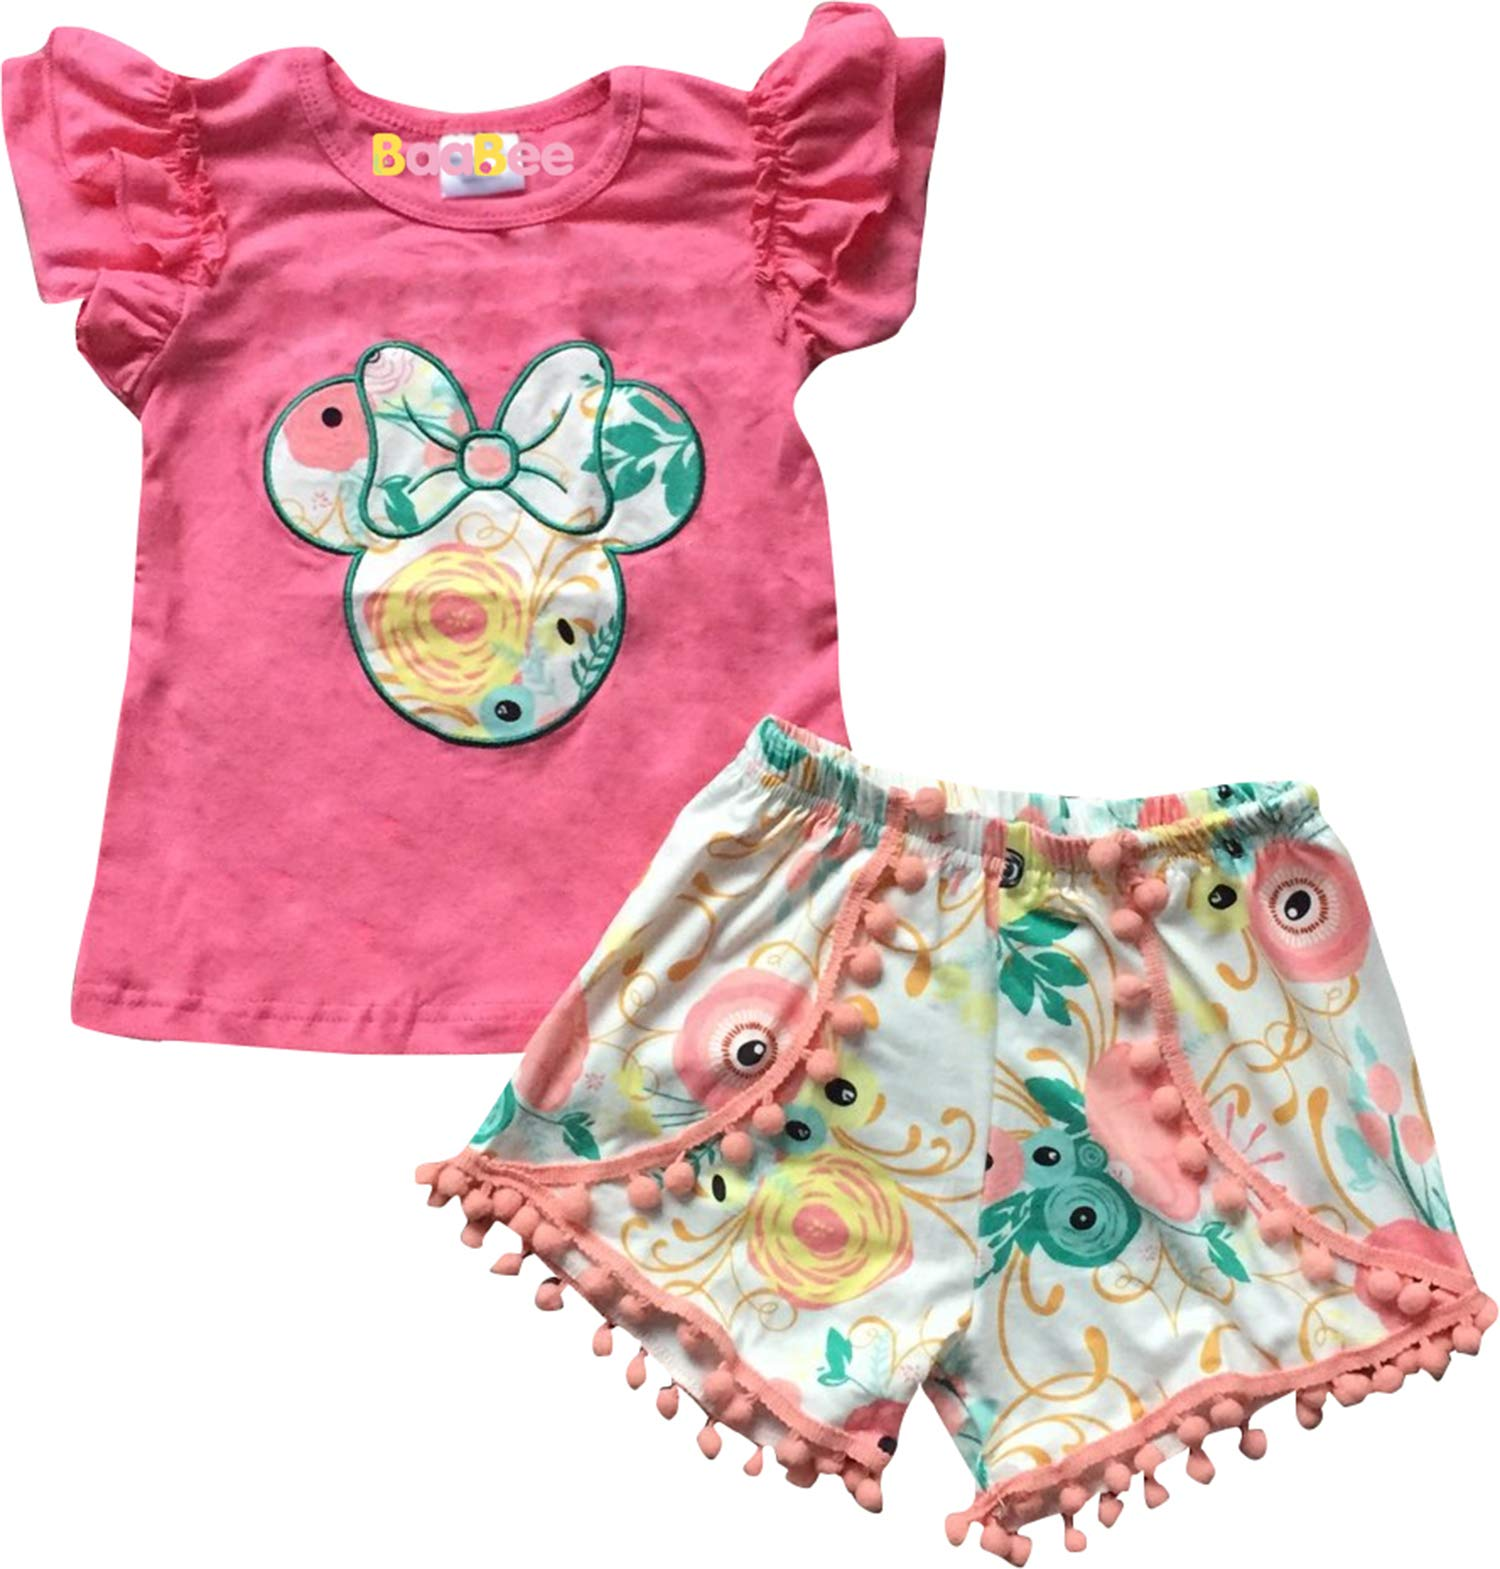 Boutique Little Girls Minnie Mouse Head Floral Top Shorts Outfit Coral 5/XL by AMK (Image #1)